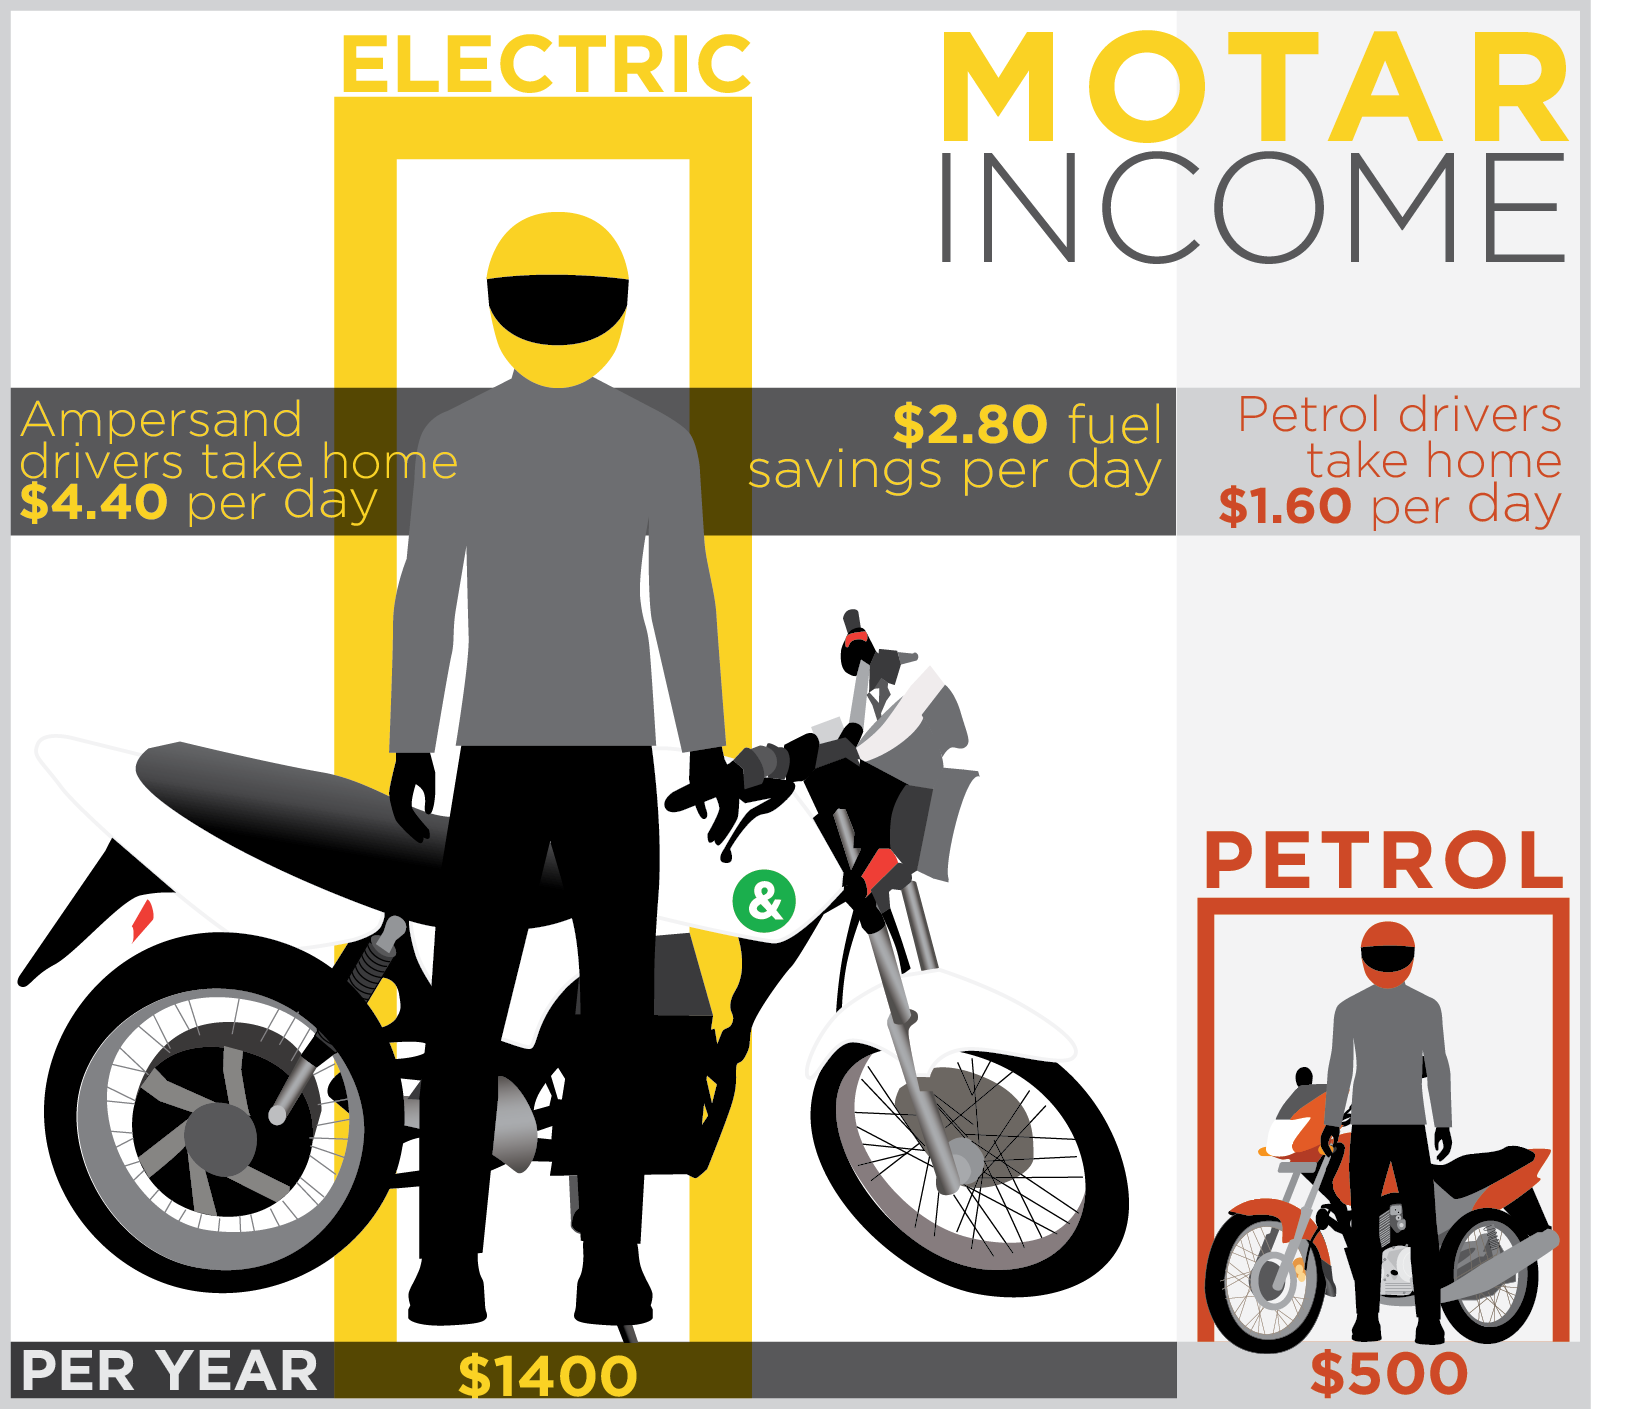 Income generation - Each moto driver spends a large chunk of their income on gasoline. With electric power we can offer them a much cheaper cleaner alternative. Our current projections predict a net saving of about $900 a year compared to petrol.